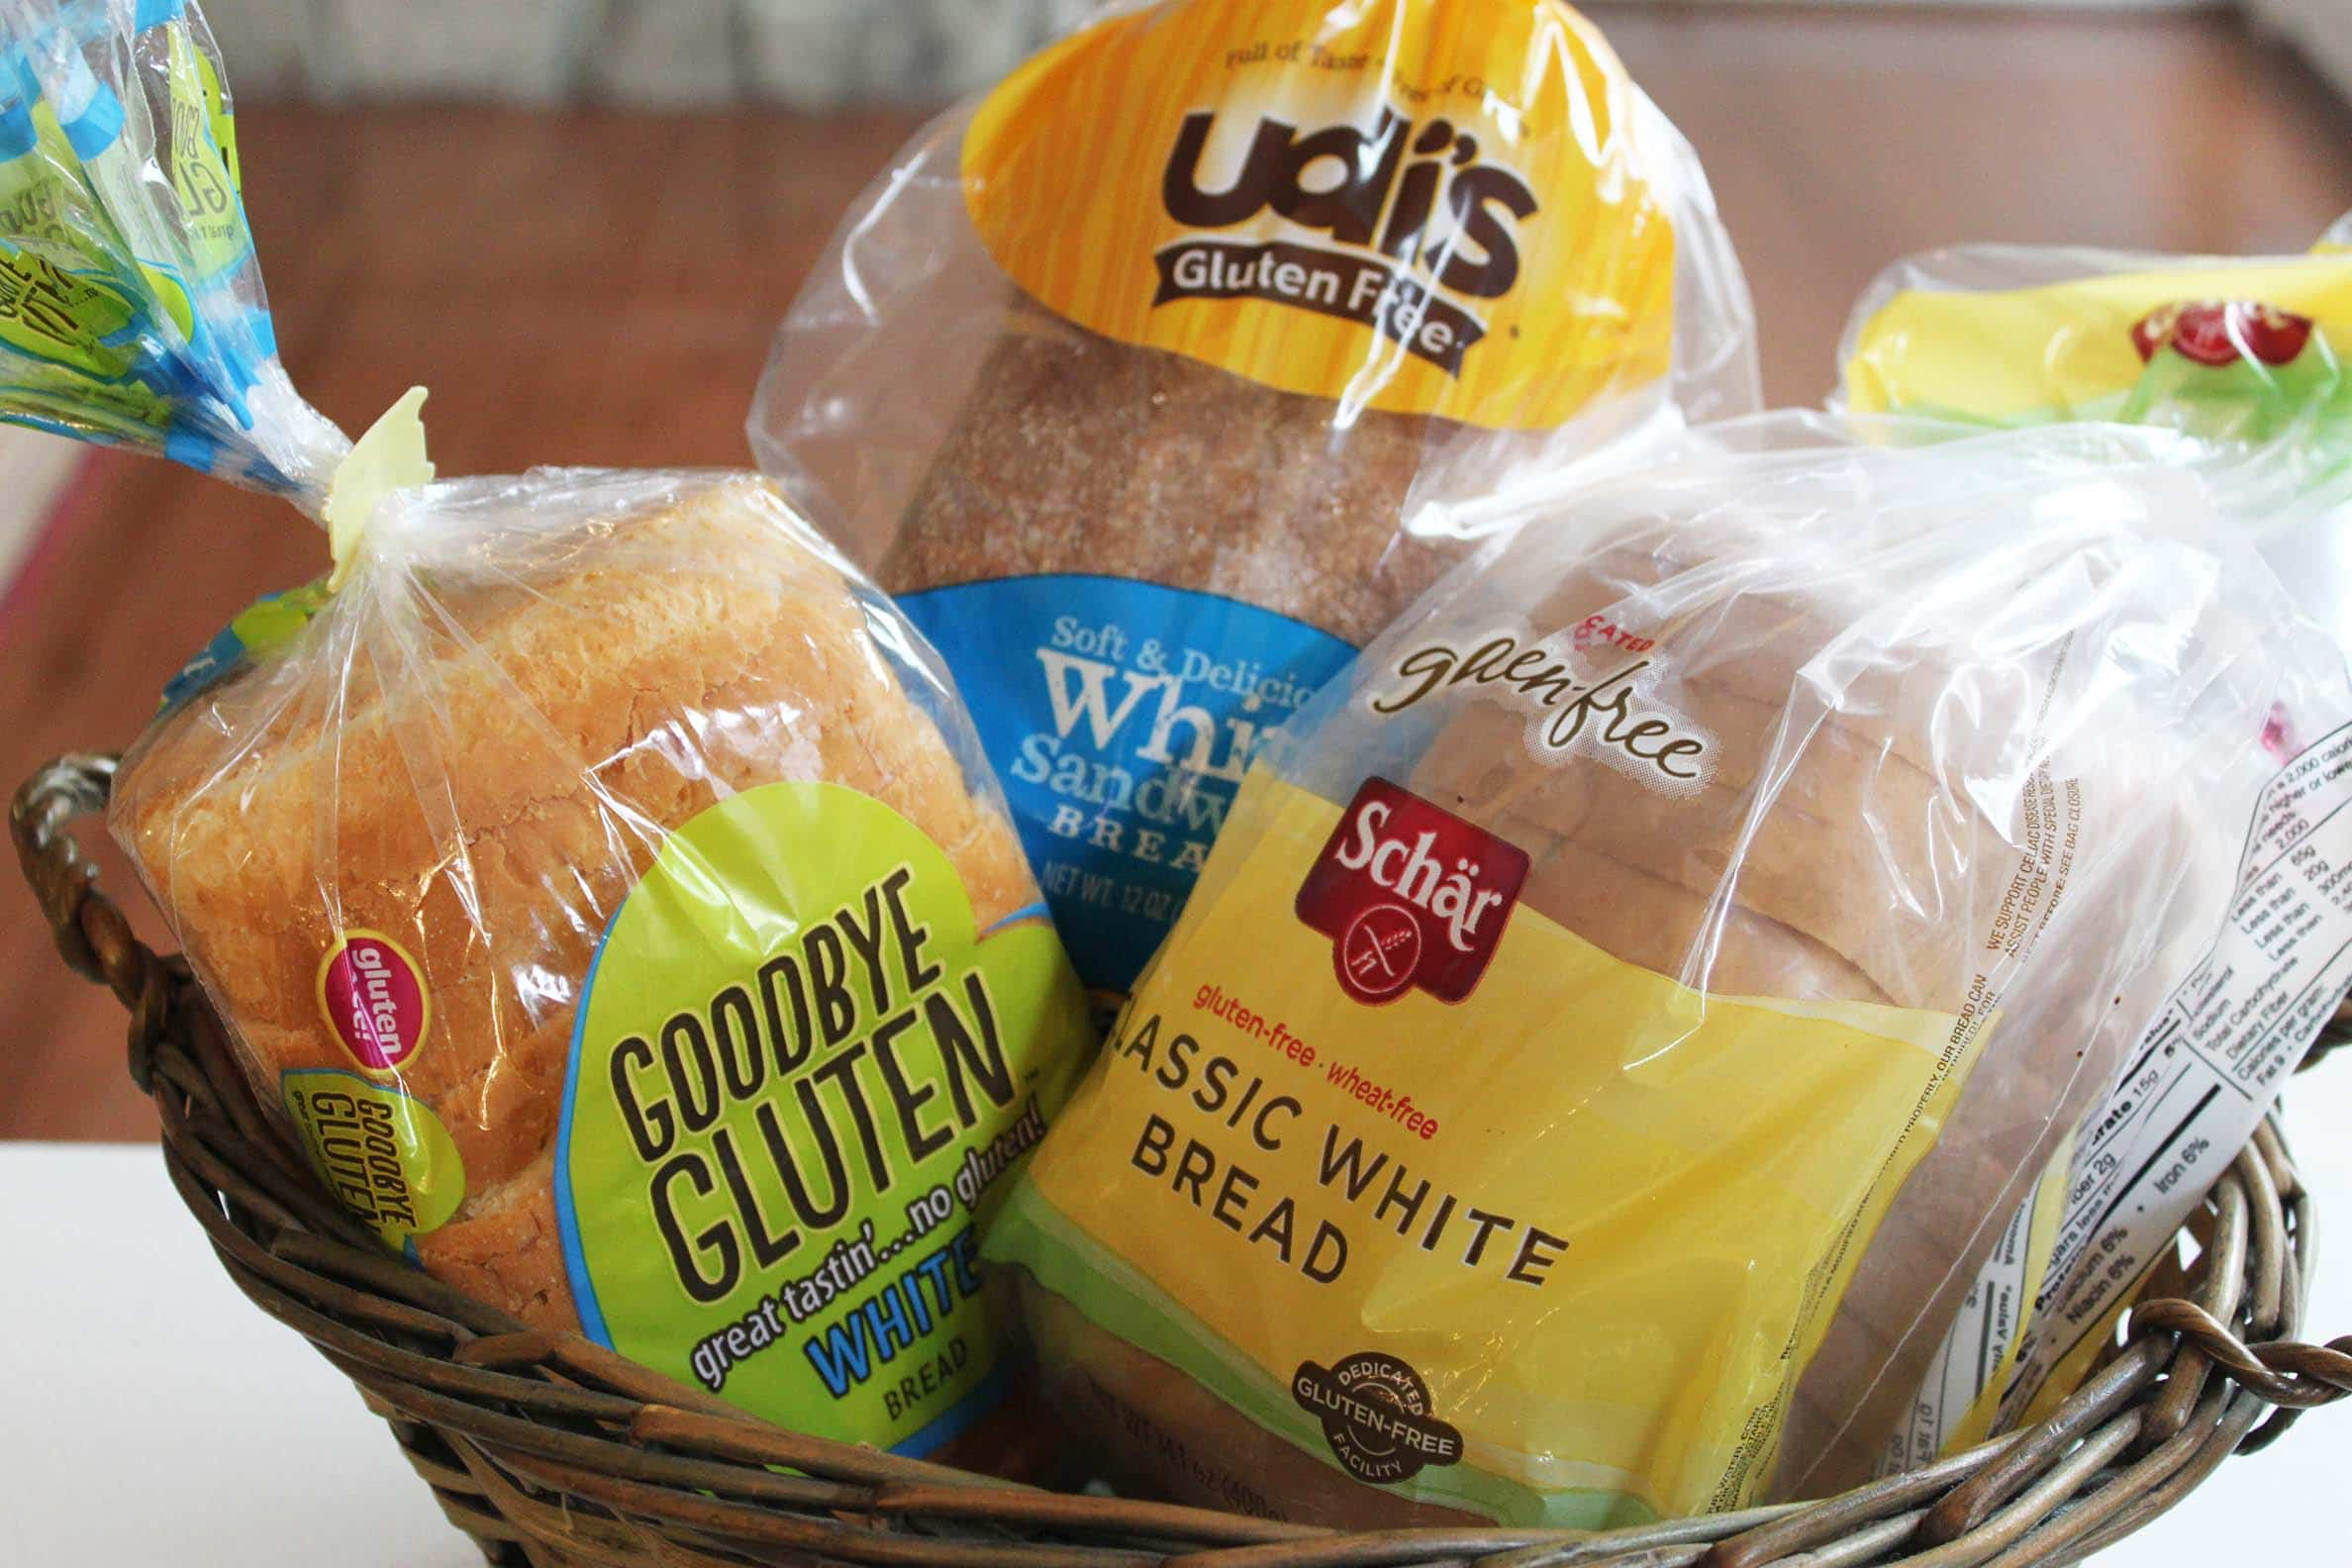 Battle of the Gluten-free Breads